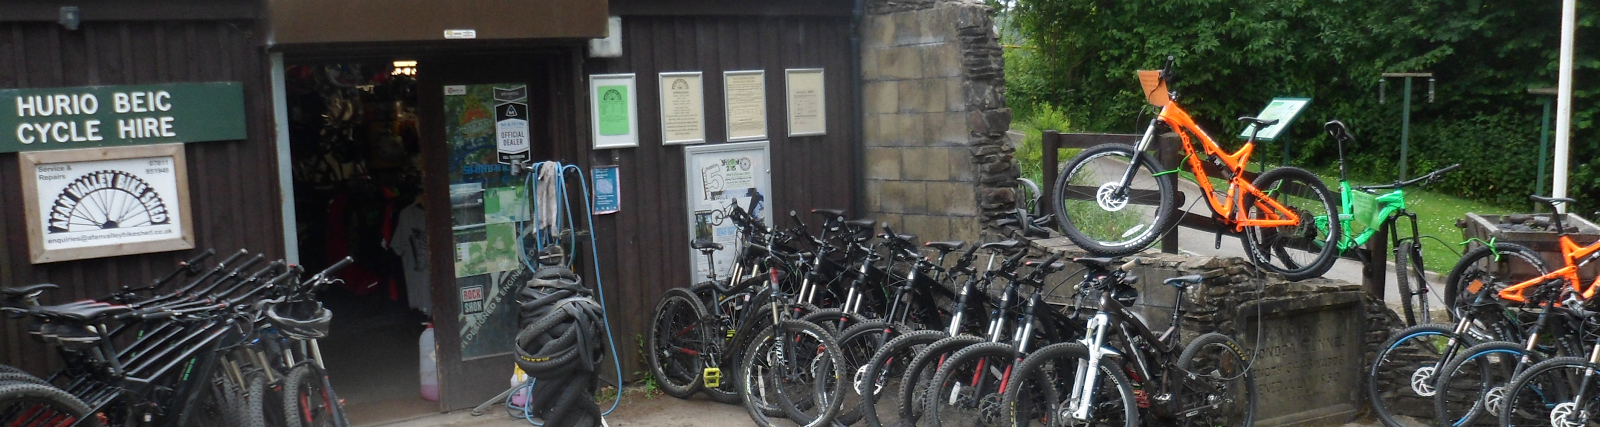 Afan Valley Bike Shed - to keep you riding!